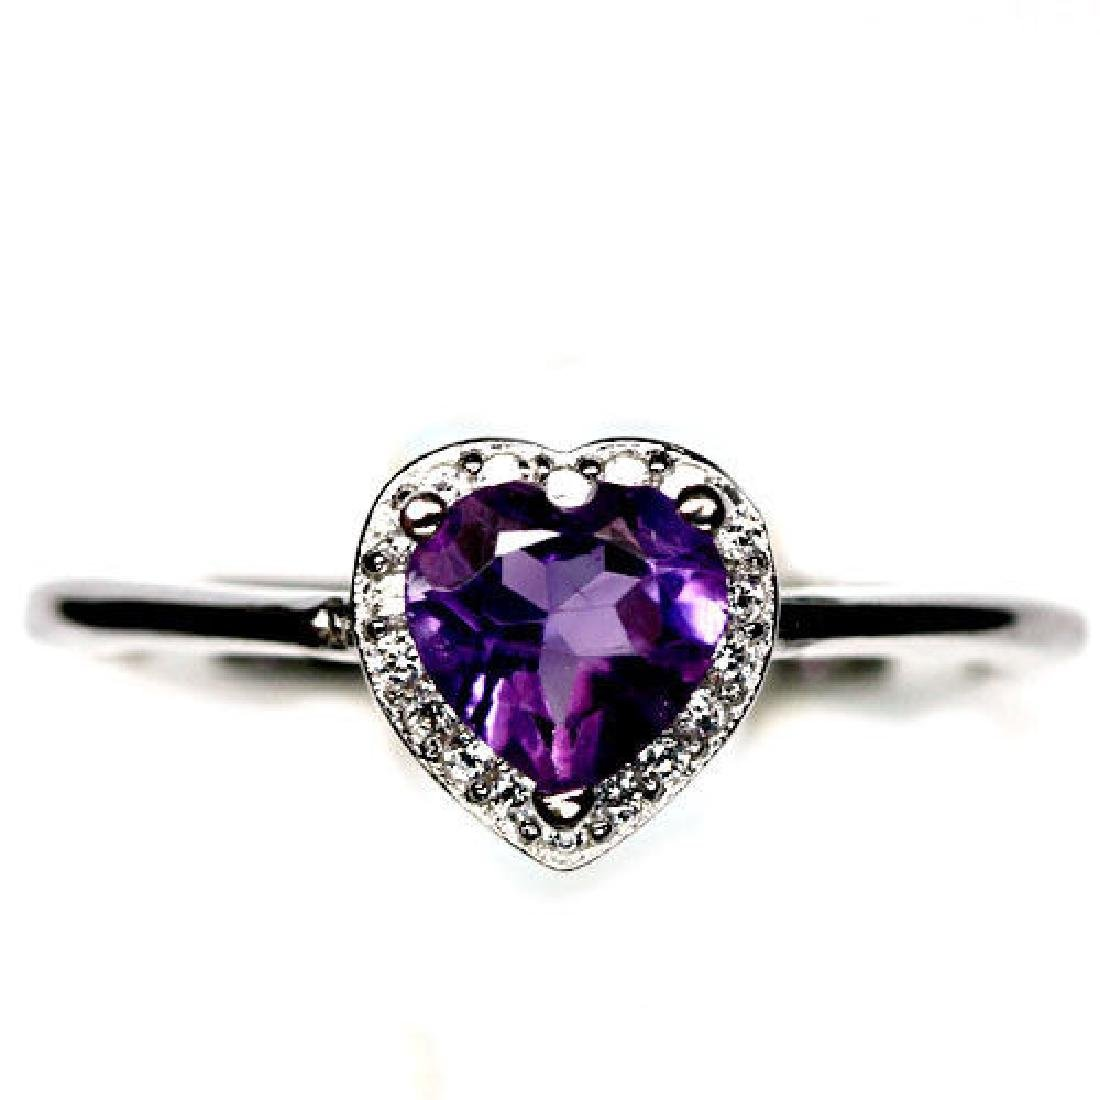 DAZZLING! NATURAL! PURPLE AMETHYST & WHITE CZ STERLING